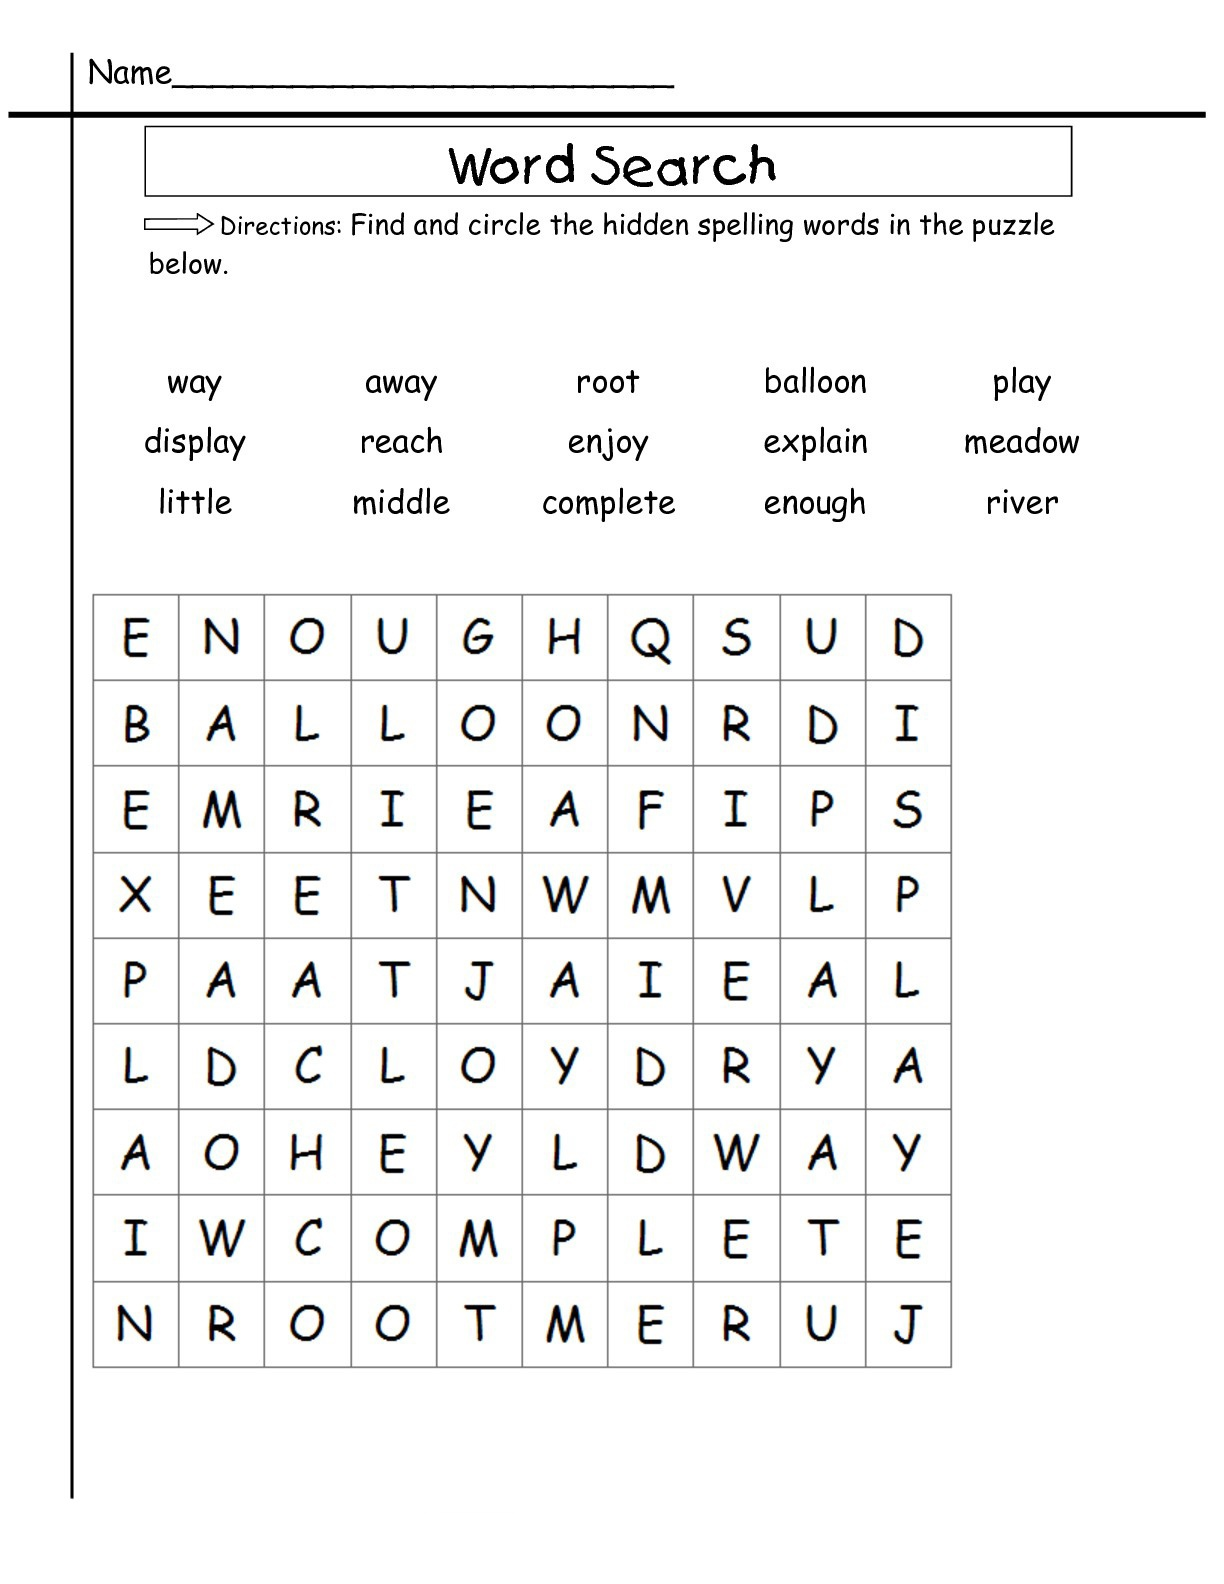 2Nd Grade Word Search - Best Coloring Pages For Kids - 2Nd Grade Word Search Free Printable